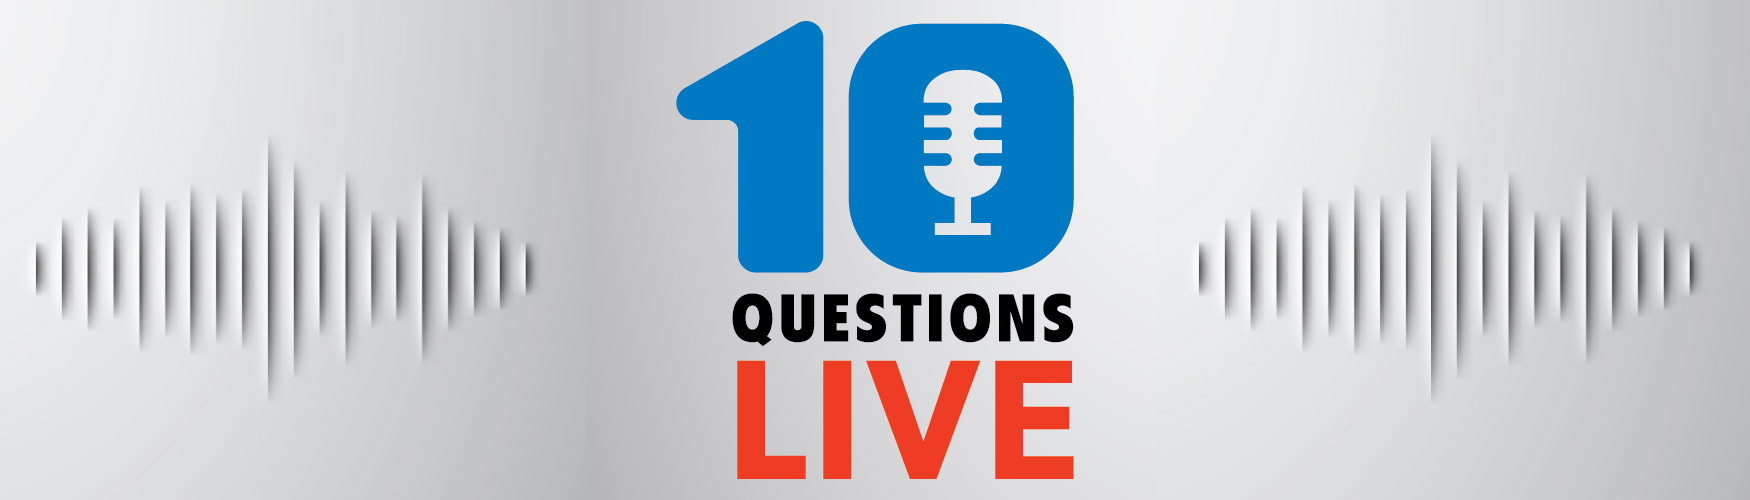 ABA 10 Questions LIVE Header